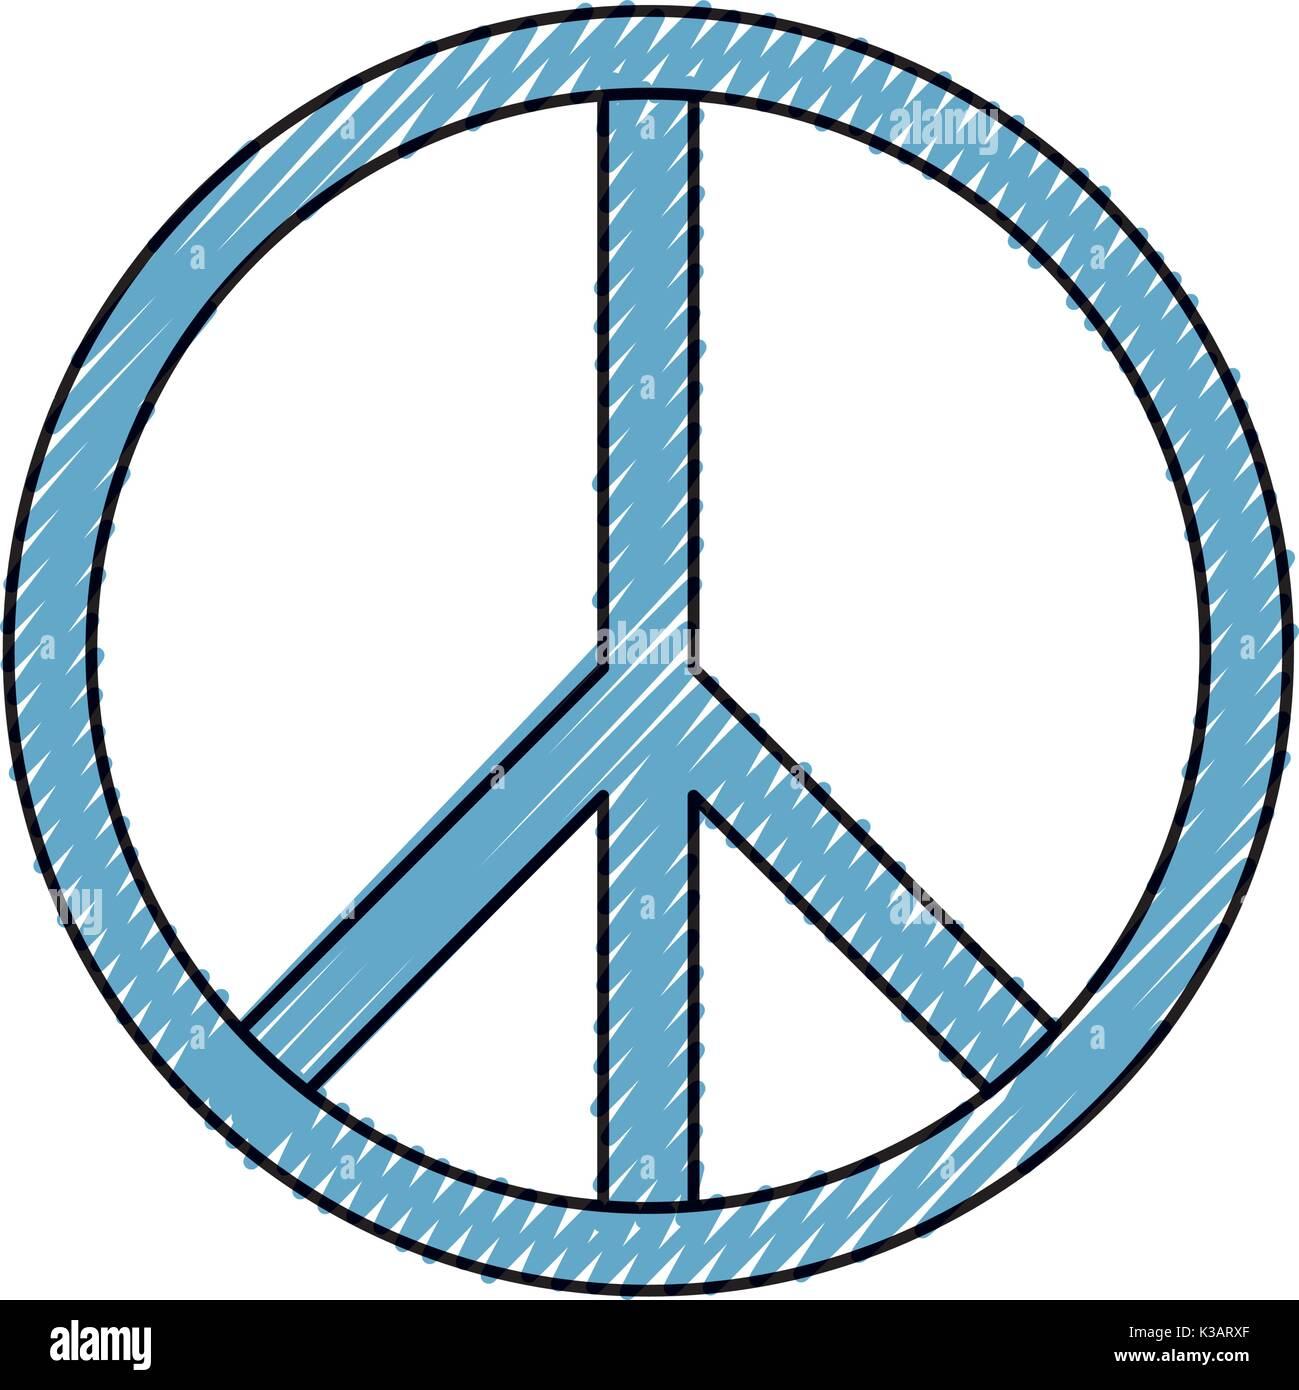 Peace sign stock vector images alamy peace sign design stock vector biocorpaavc Choice Image